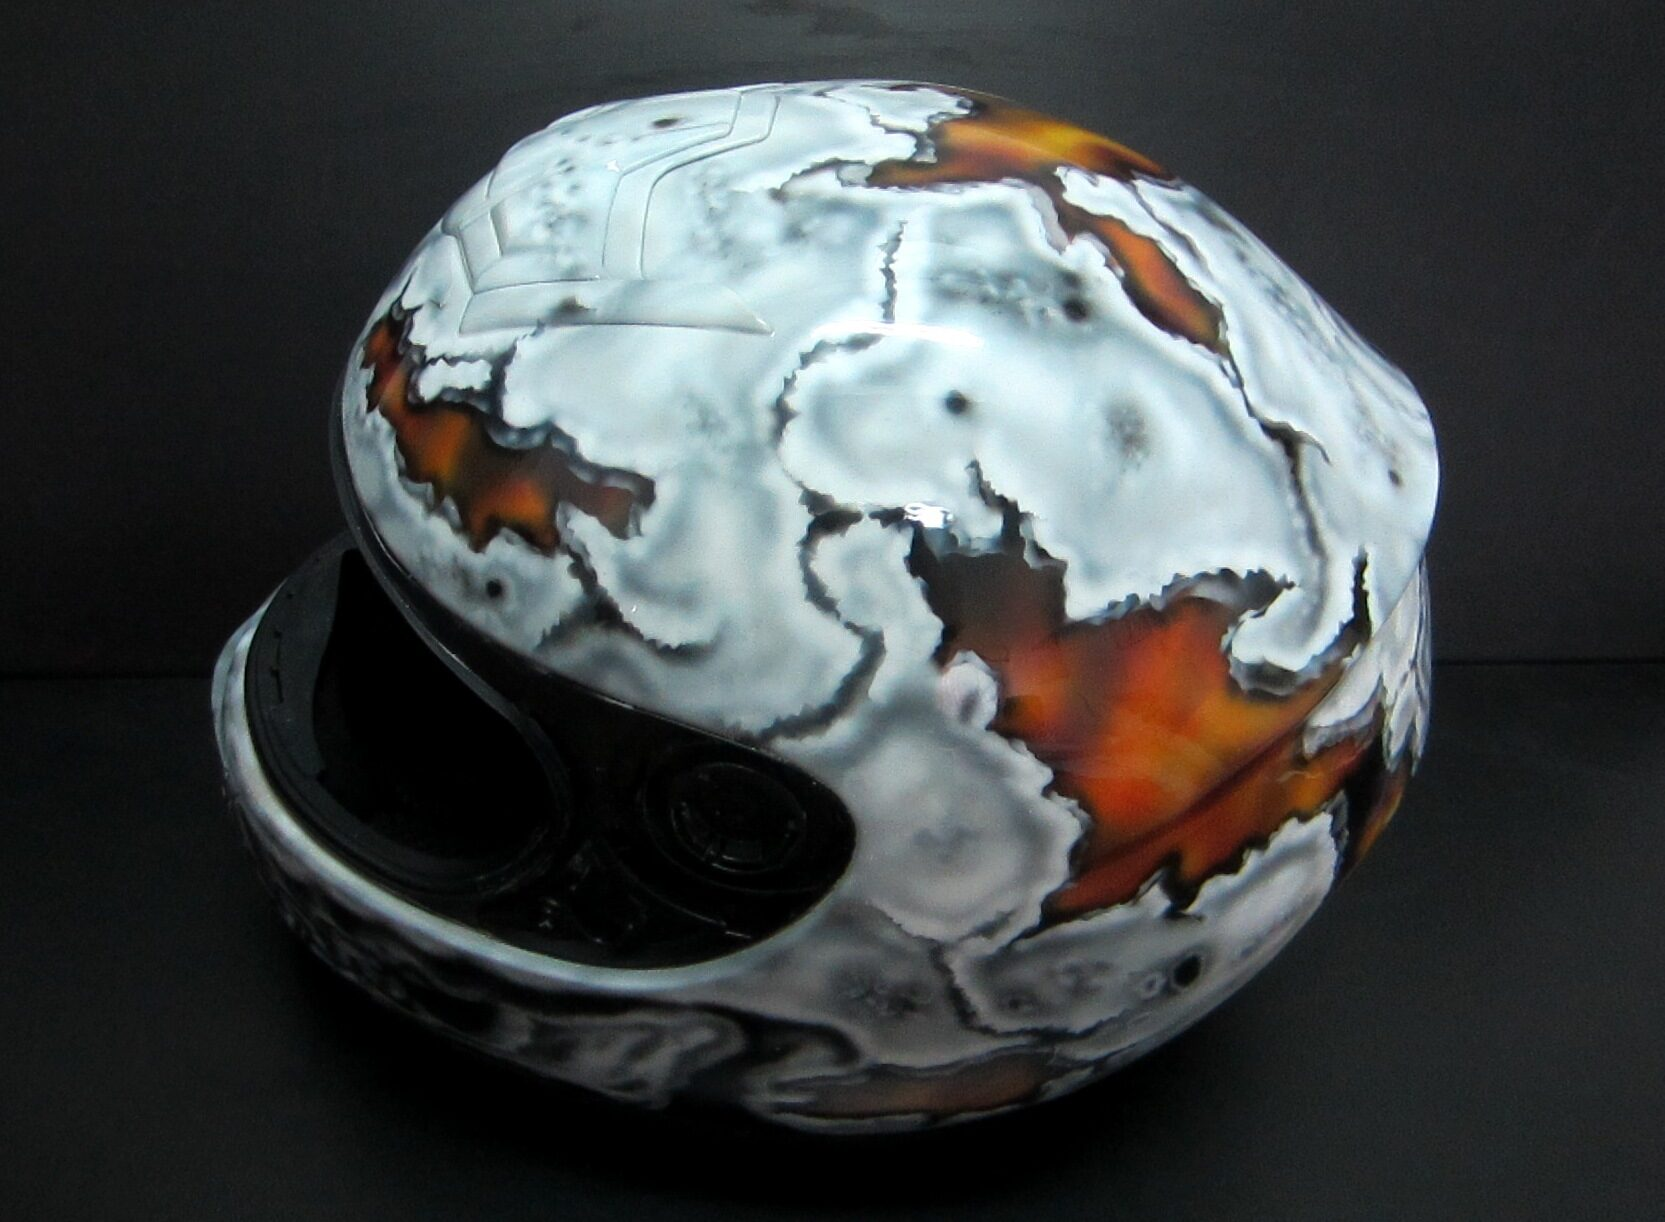 Helmet Flames & Cracks